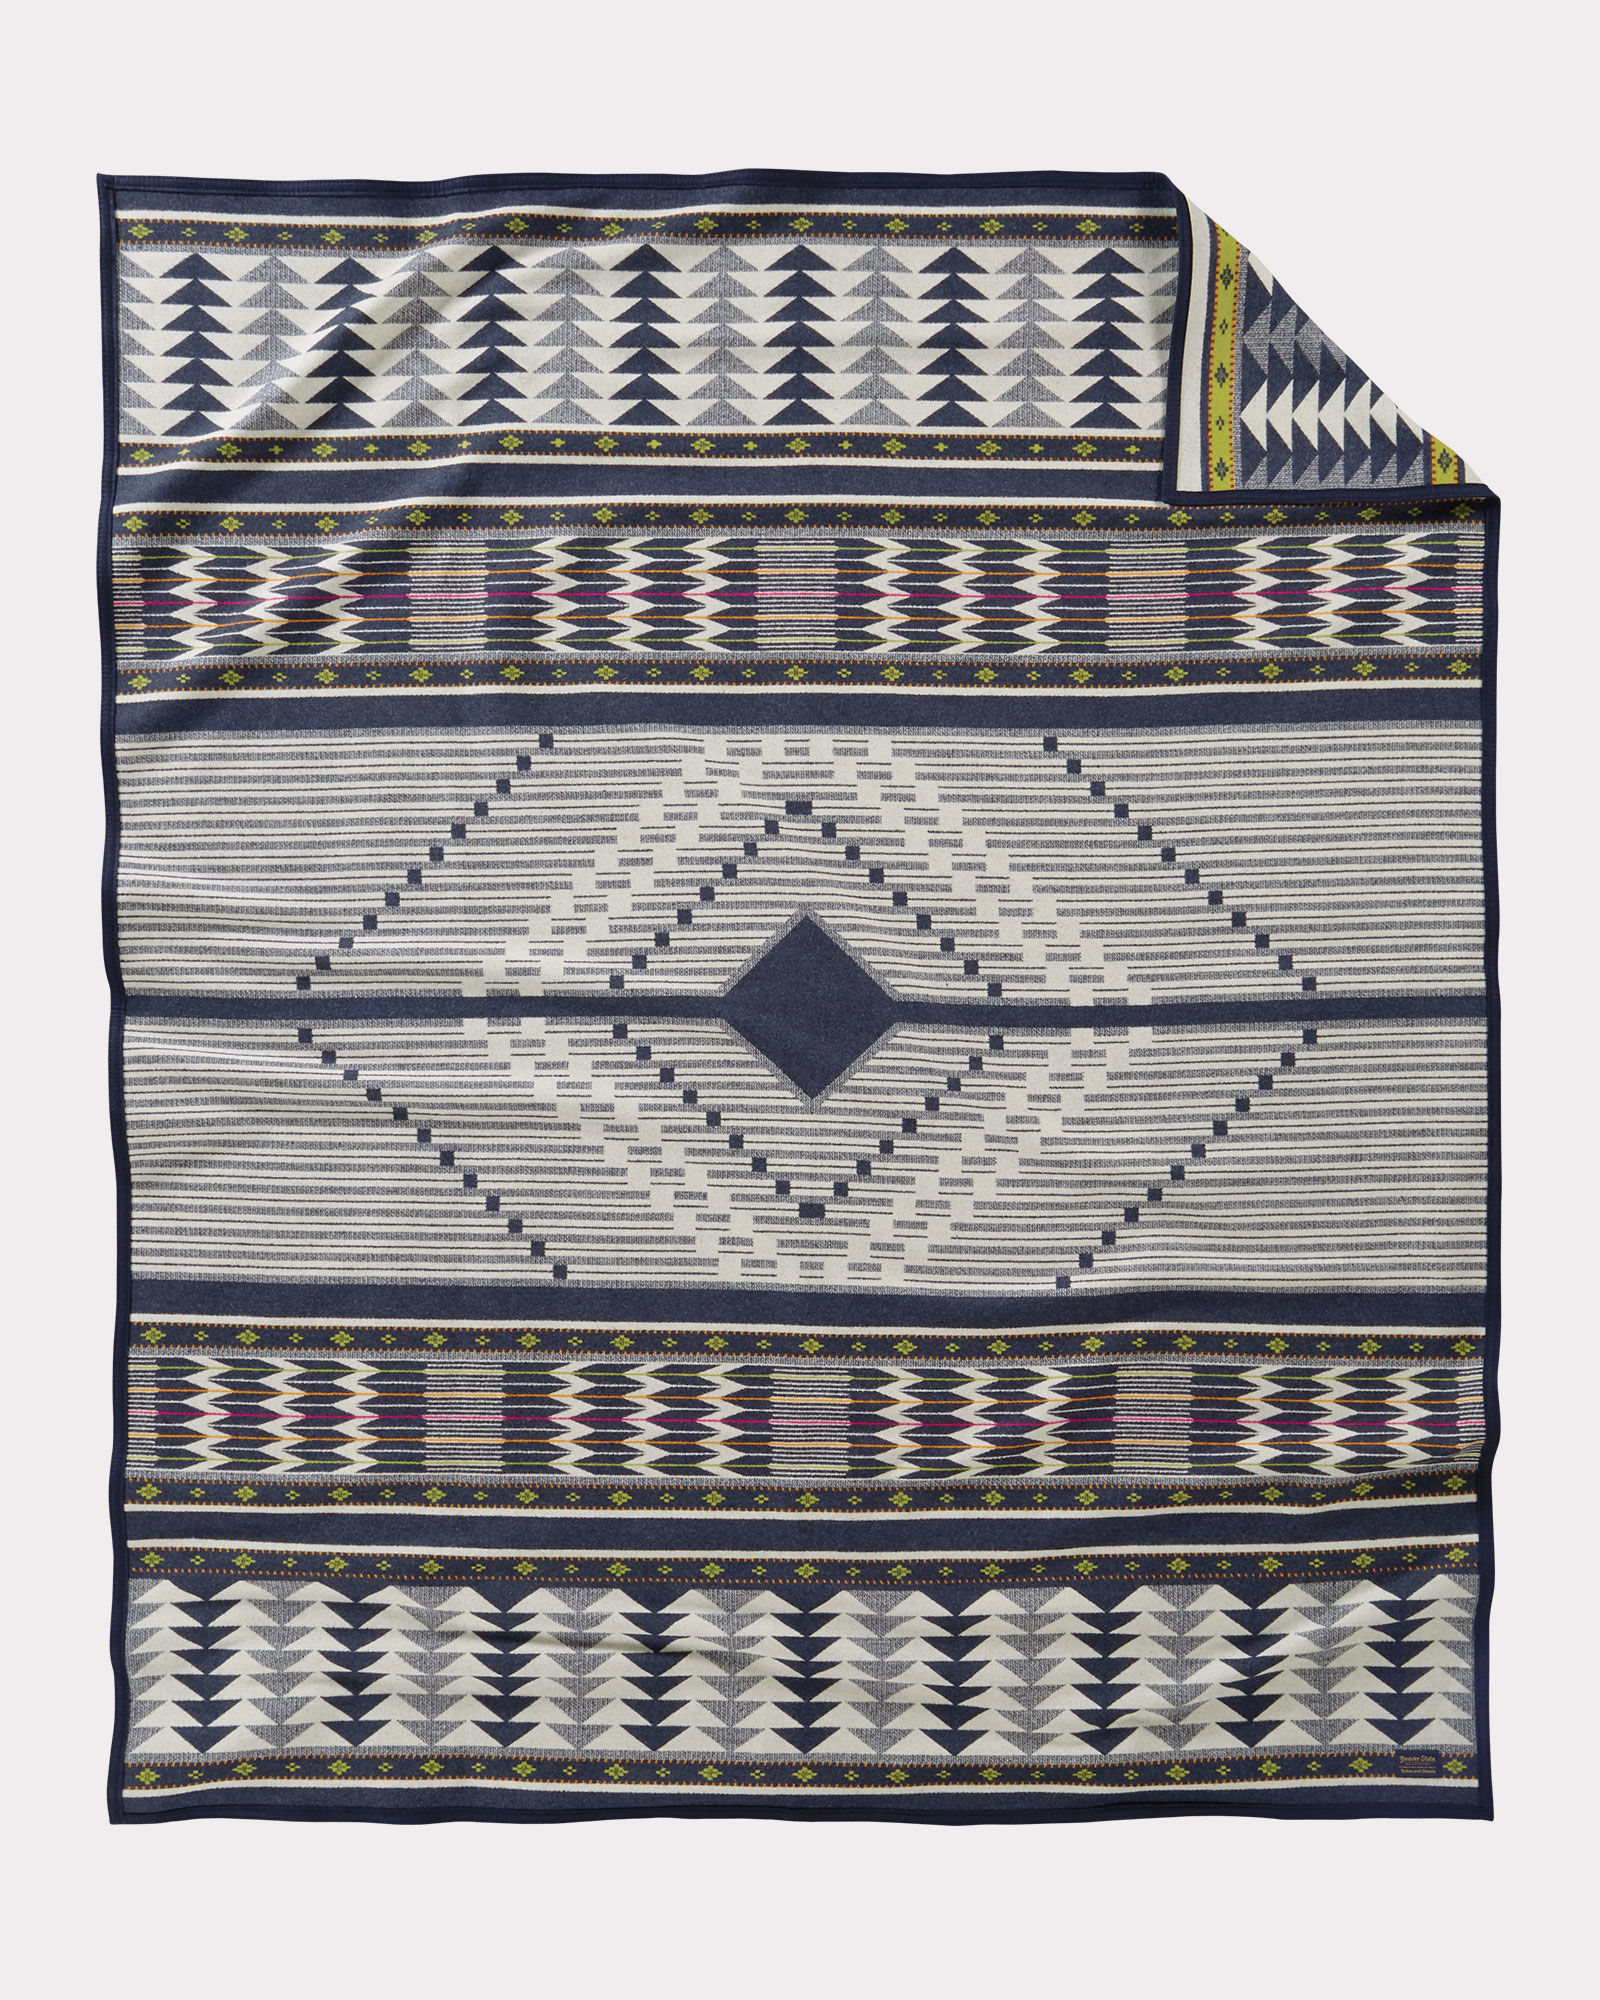 The front of the Pendleton Spirit Seeker blanket.